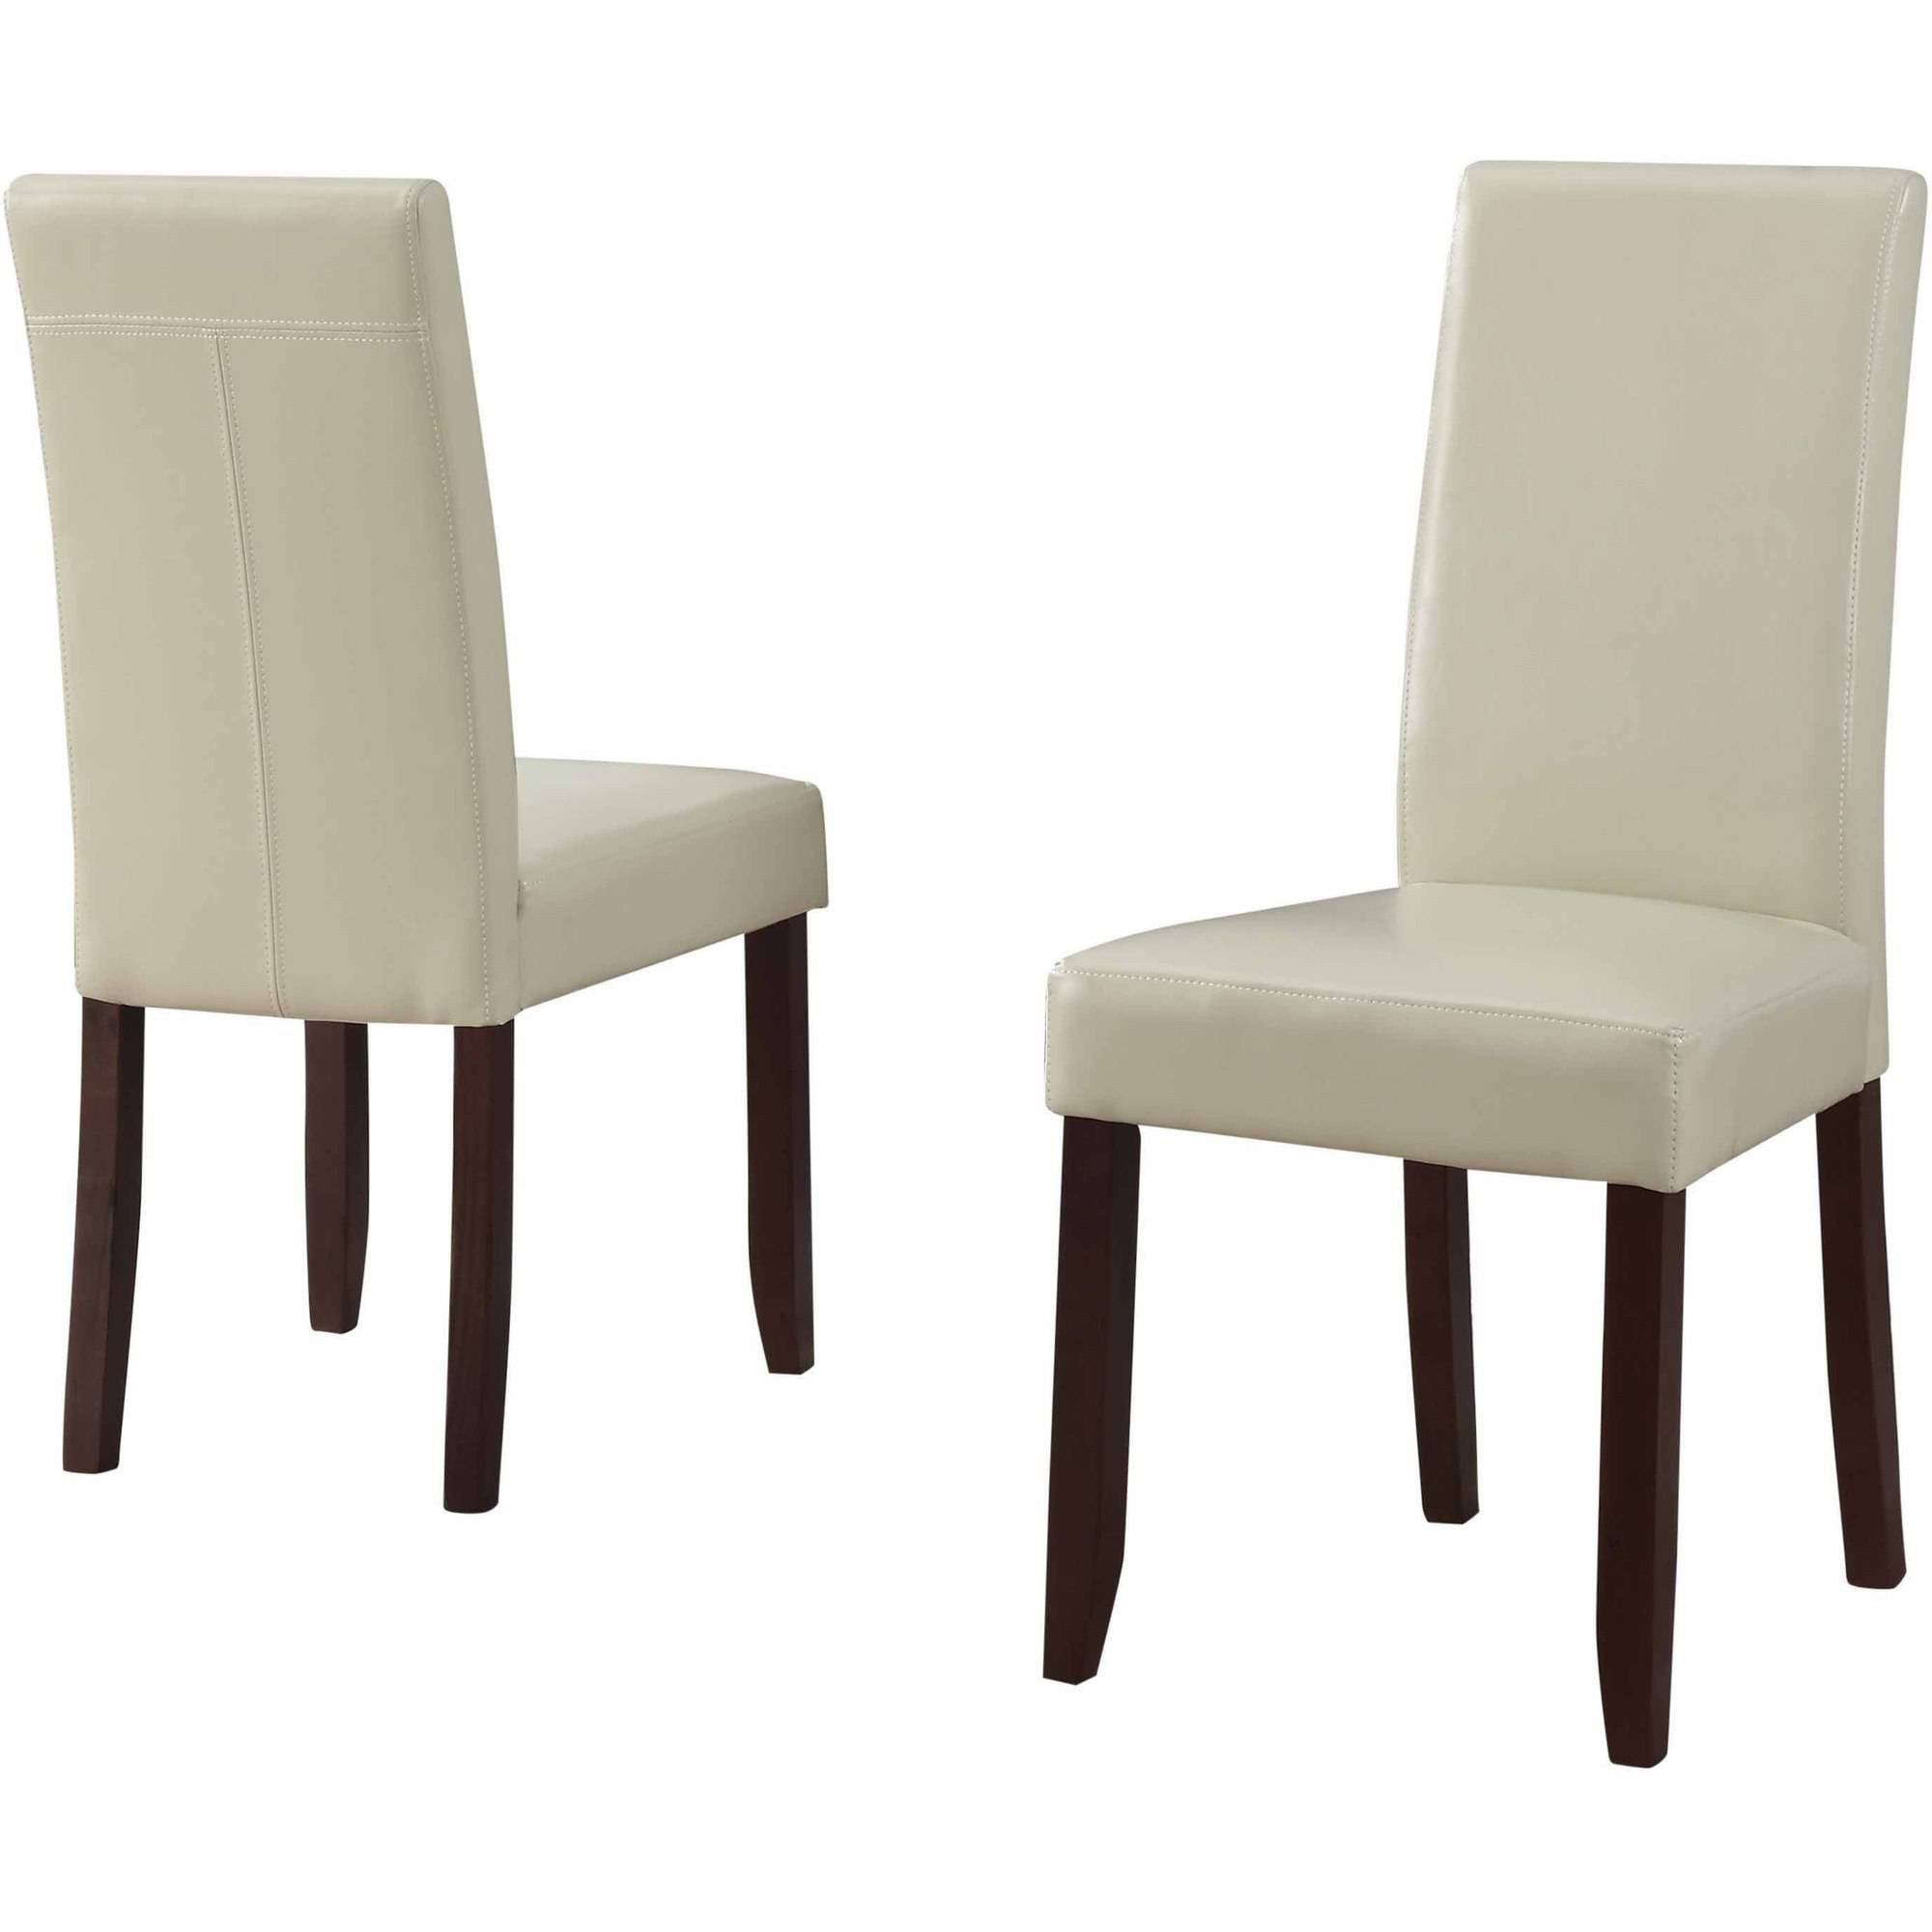 Dining Chairs Kitchen Chairs: Dining Chairs